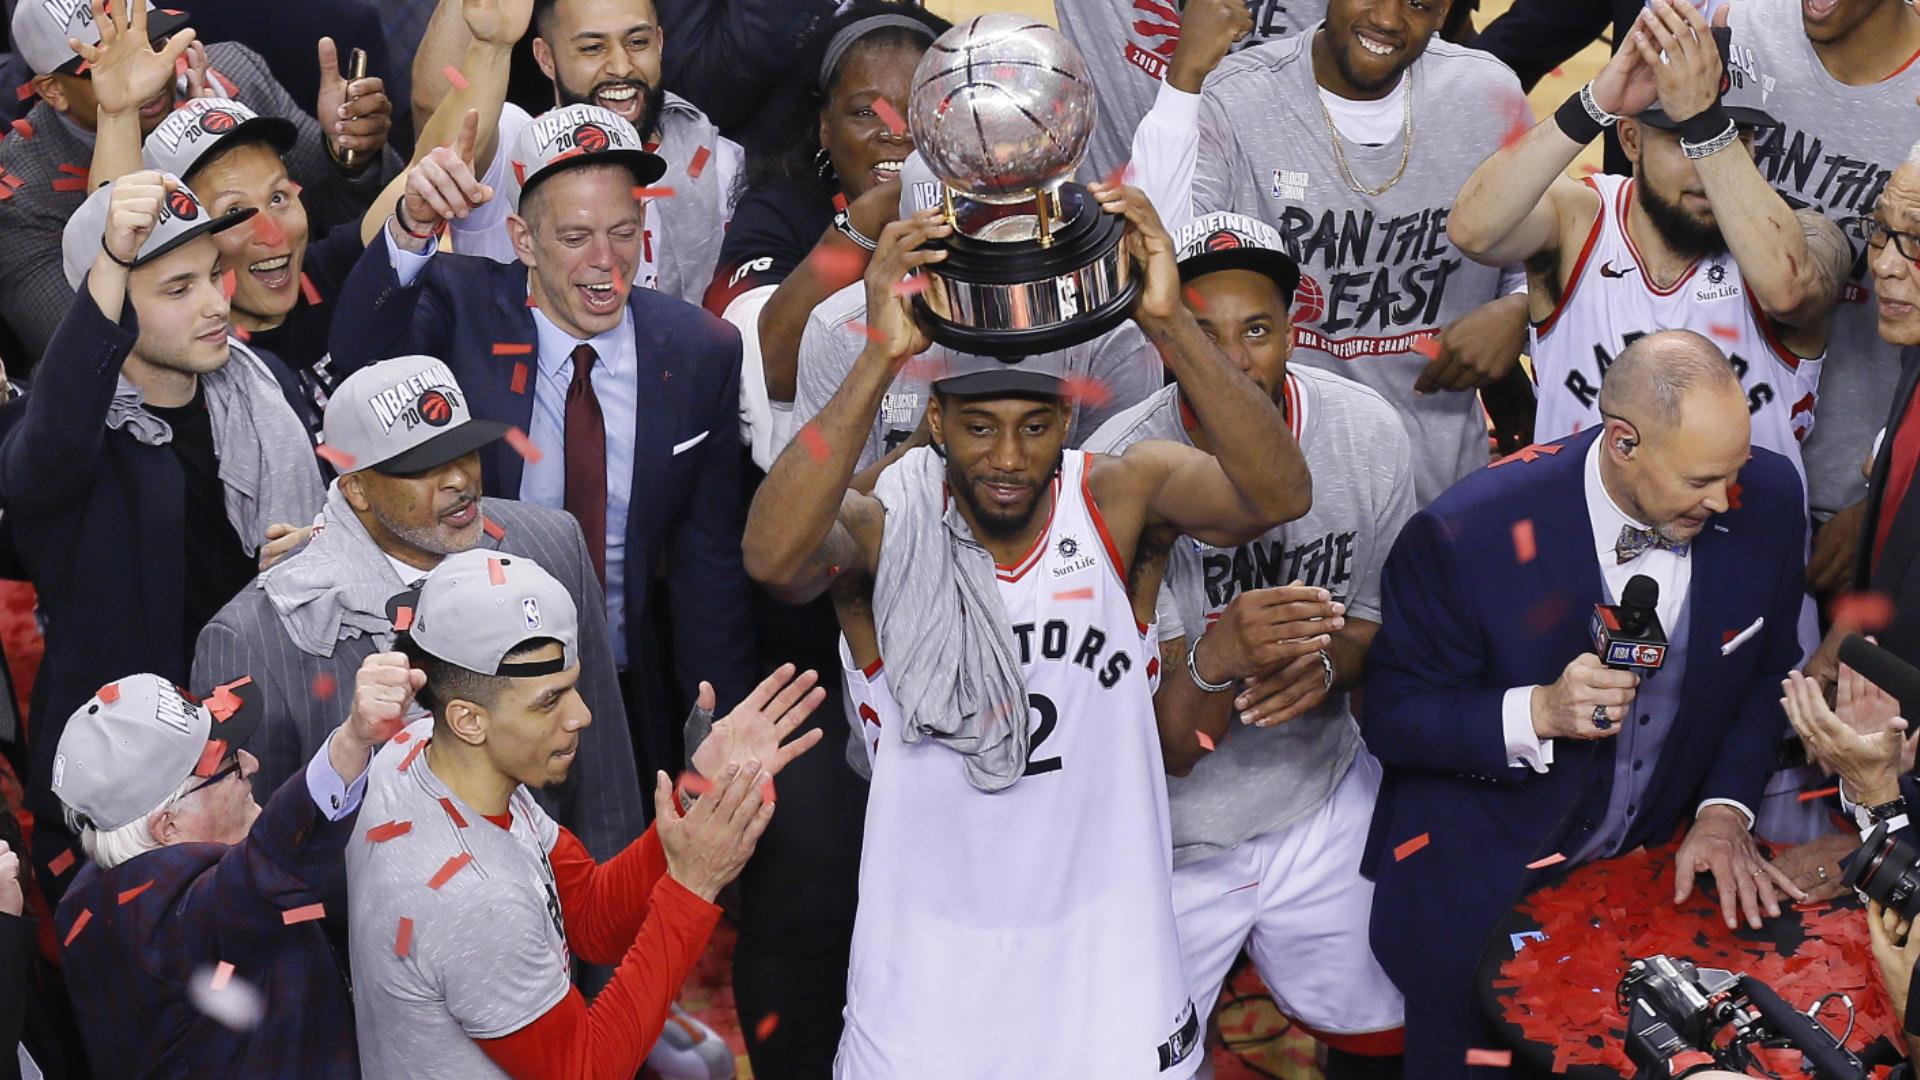 NBA Playoffs 2019: Masai Ujiri's bold moves, starting with the Kawhi Leonard gamble, forever changed Raptors history